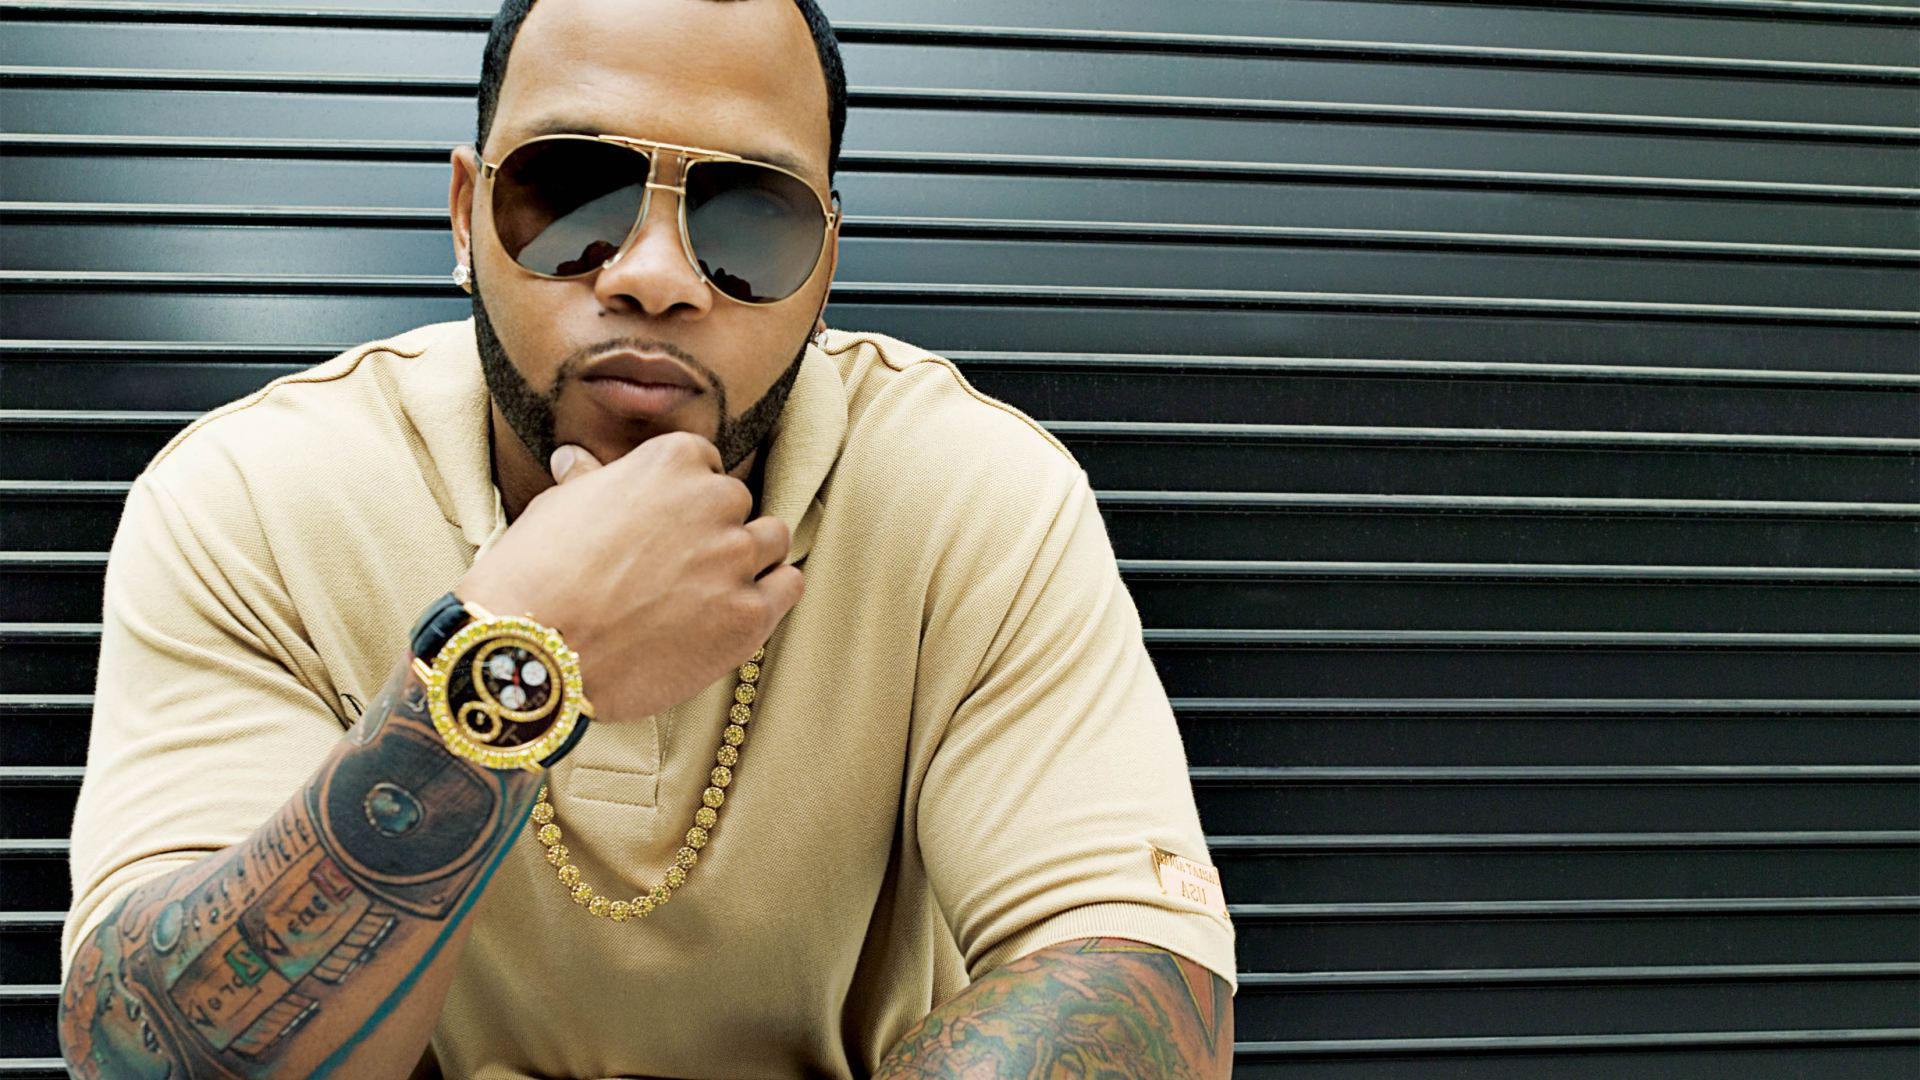 Flo Rida Wallpapers Hd